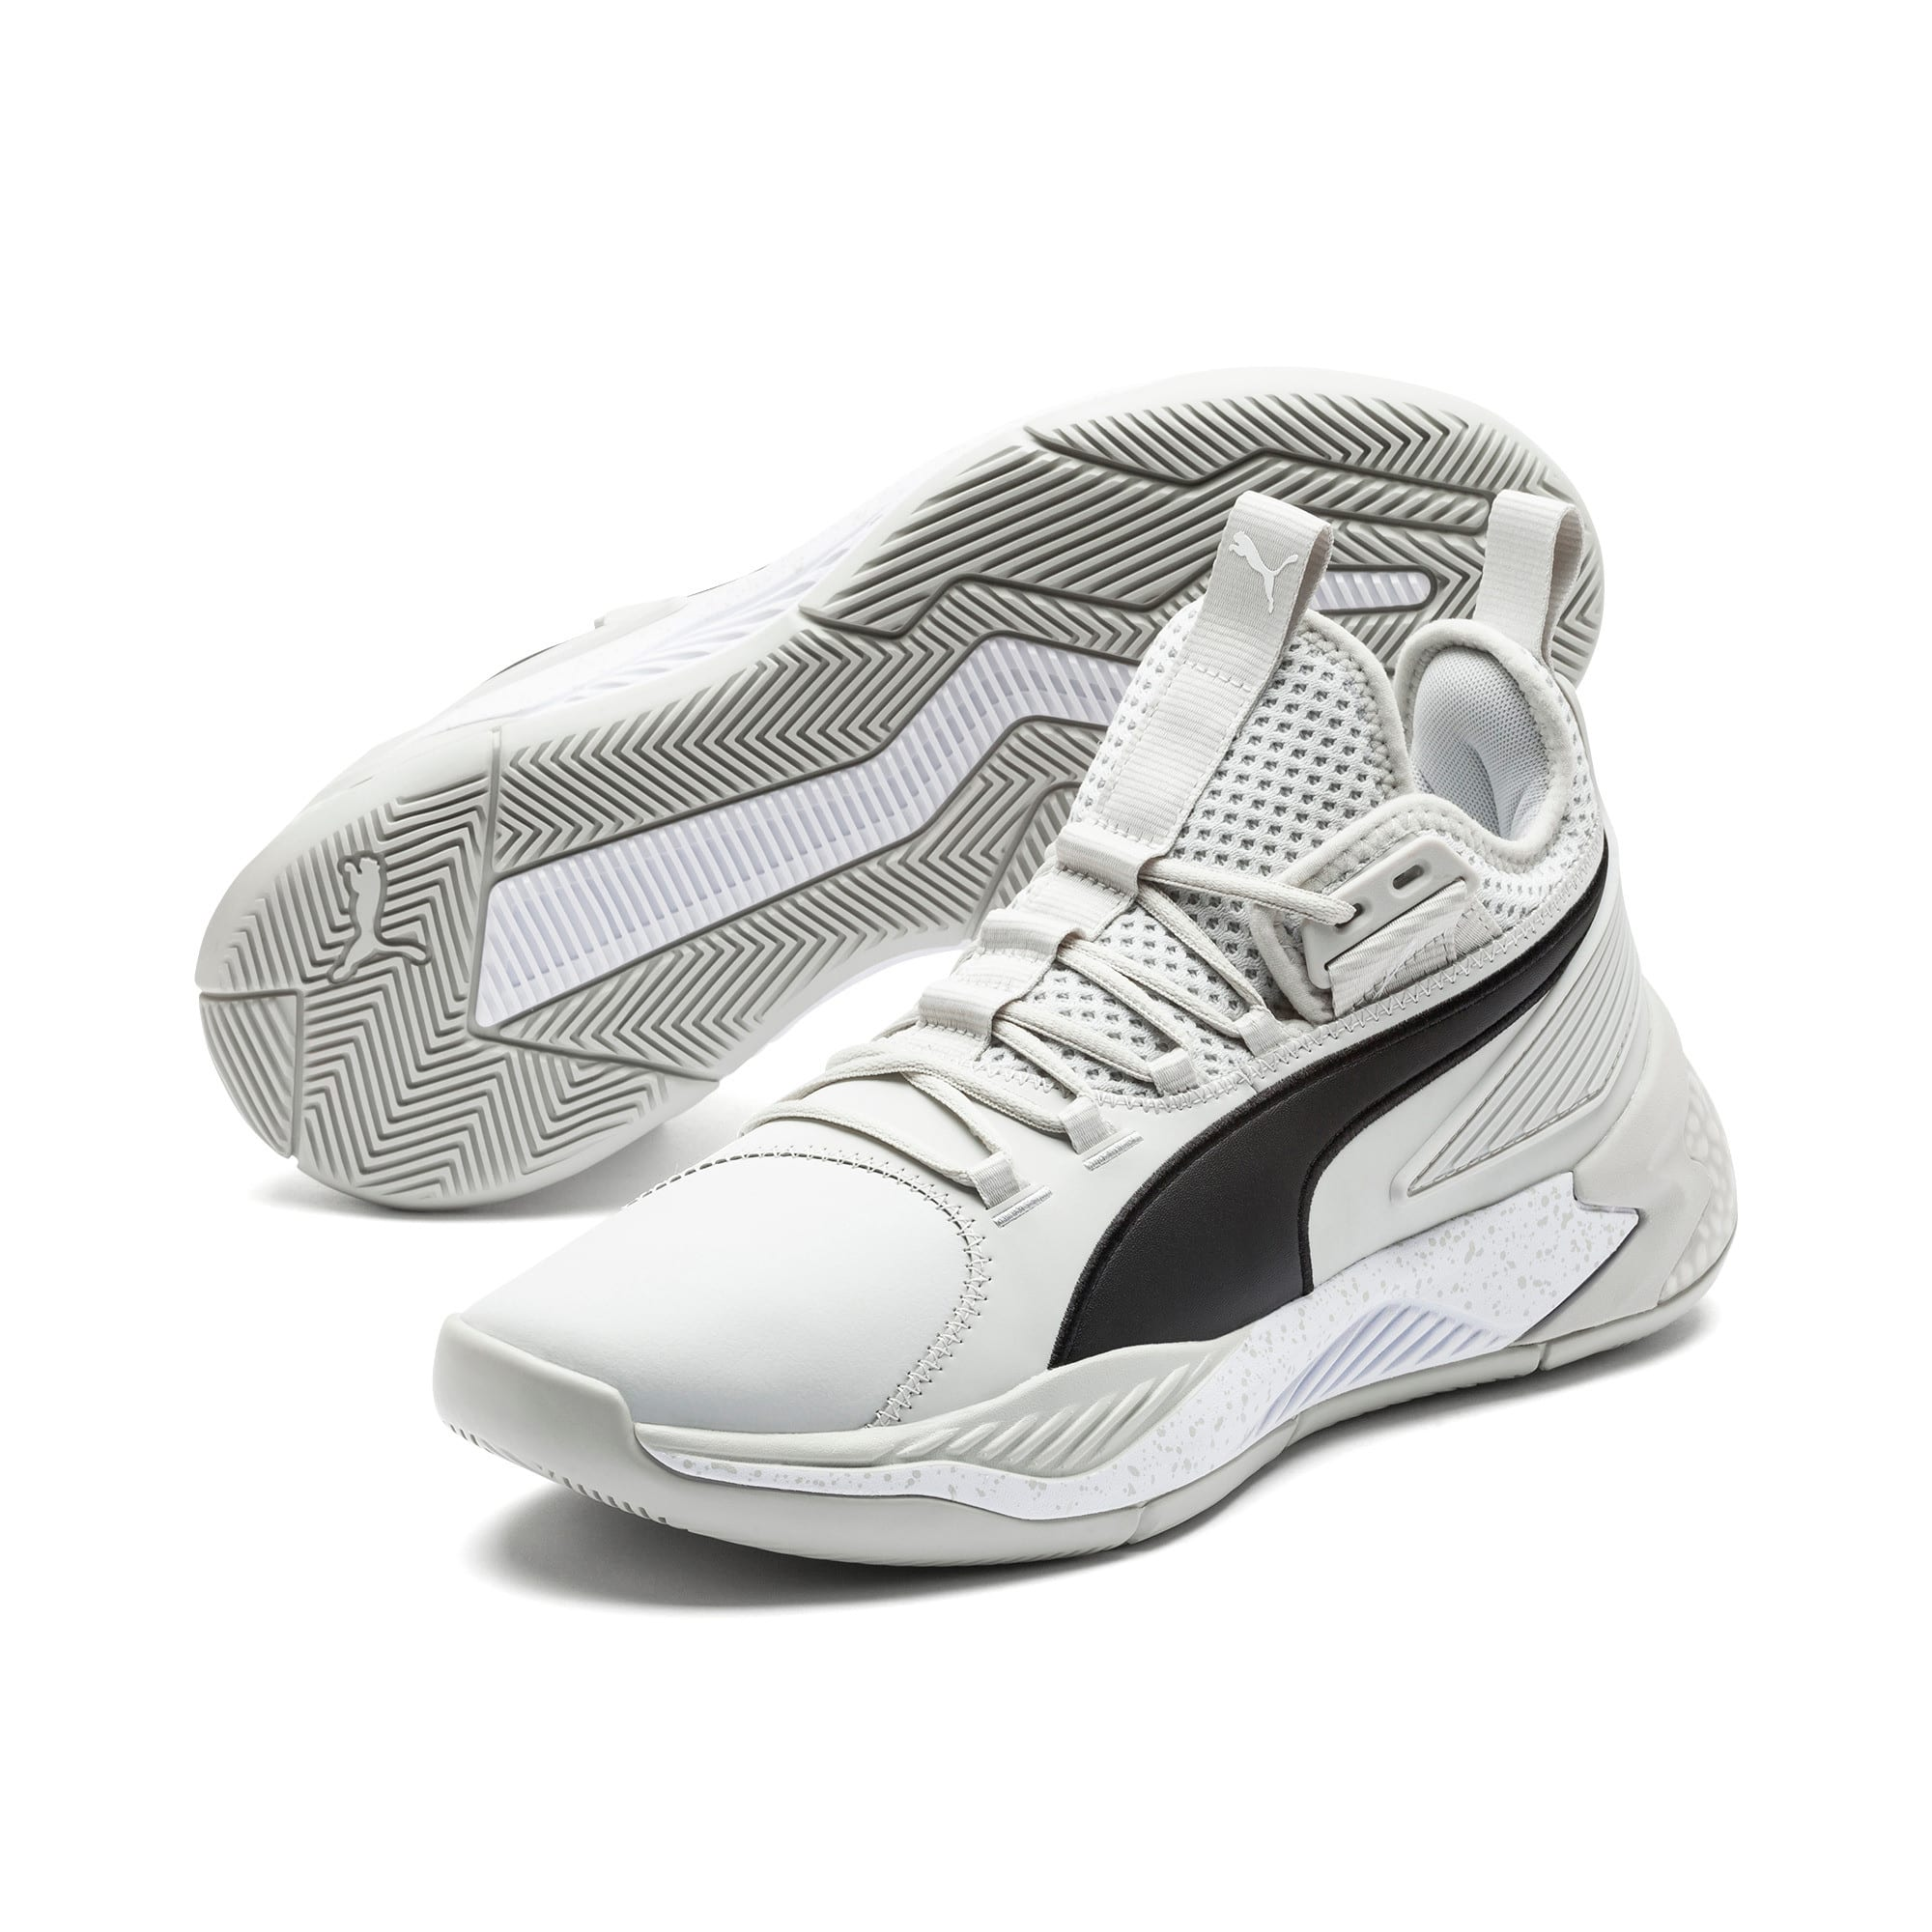 Anteprima 2 di Uproar Core Men's Basketball Shoes, Glacier Gray, medio